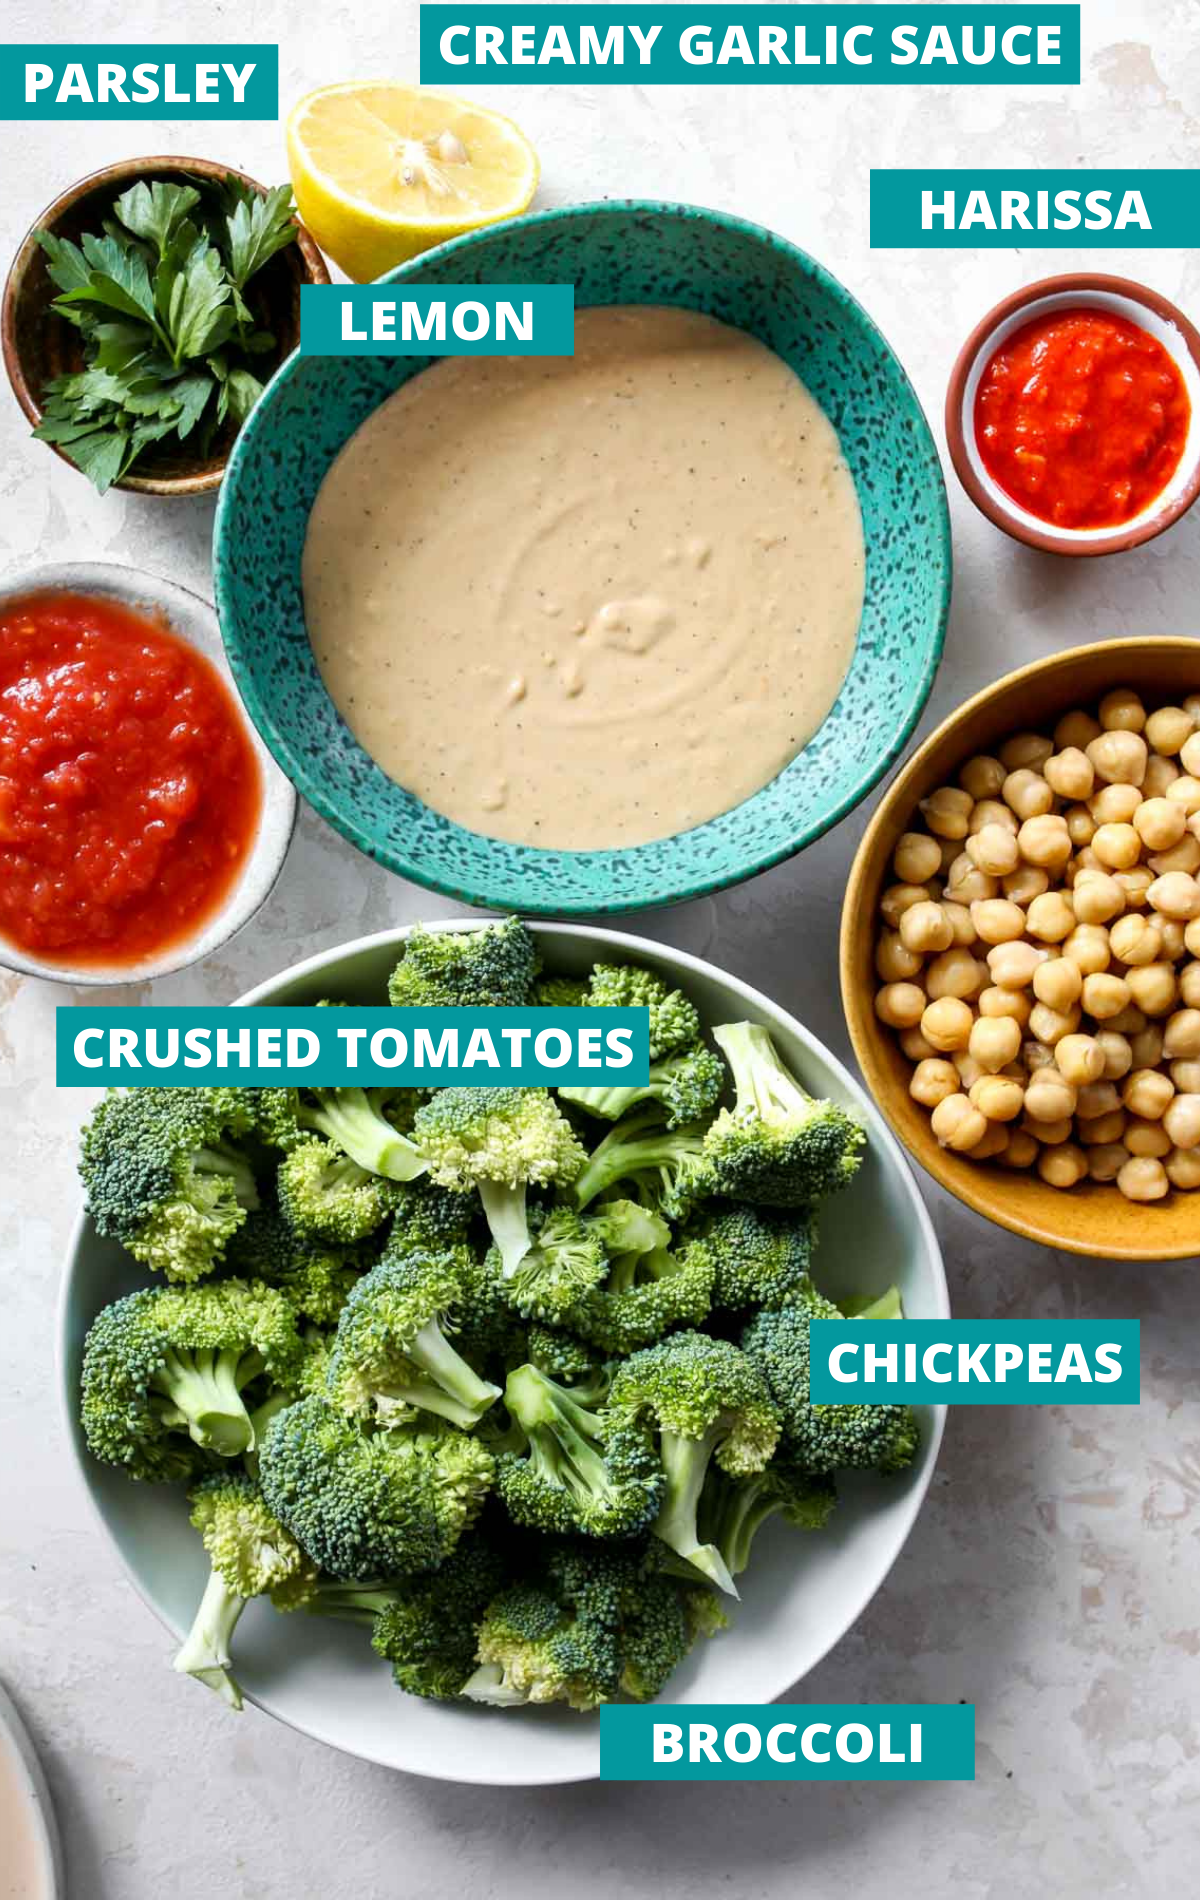 Recipe ingredients in separate bowls on a white board with blue labels